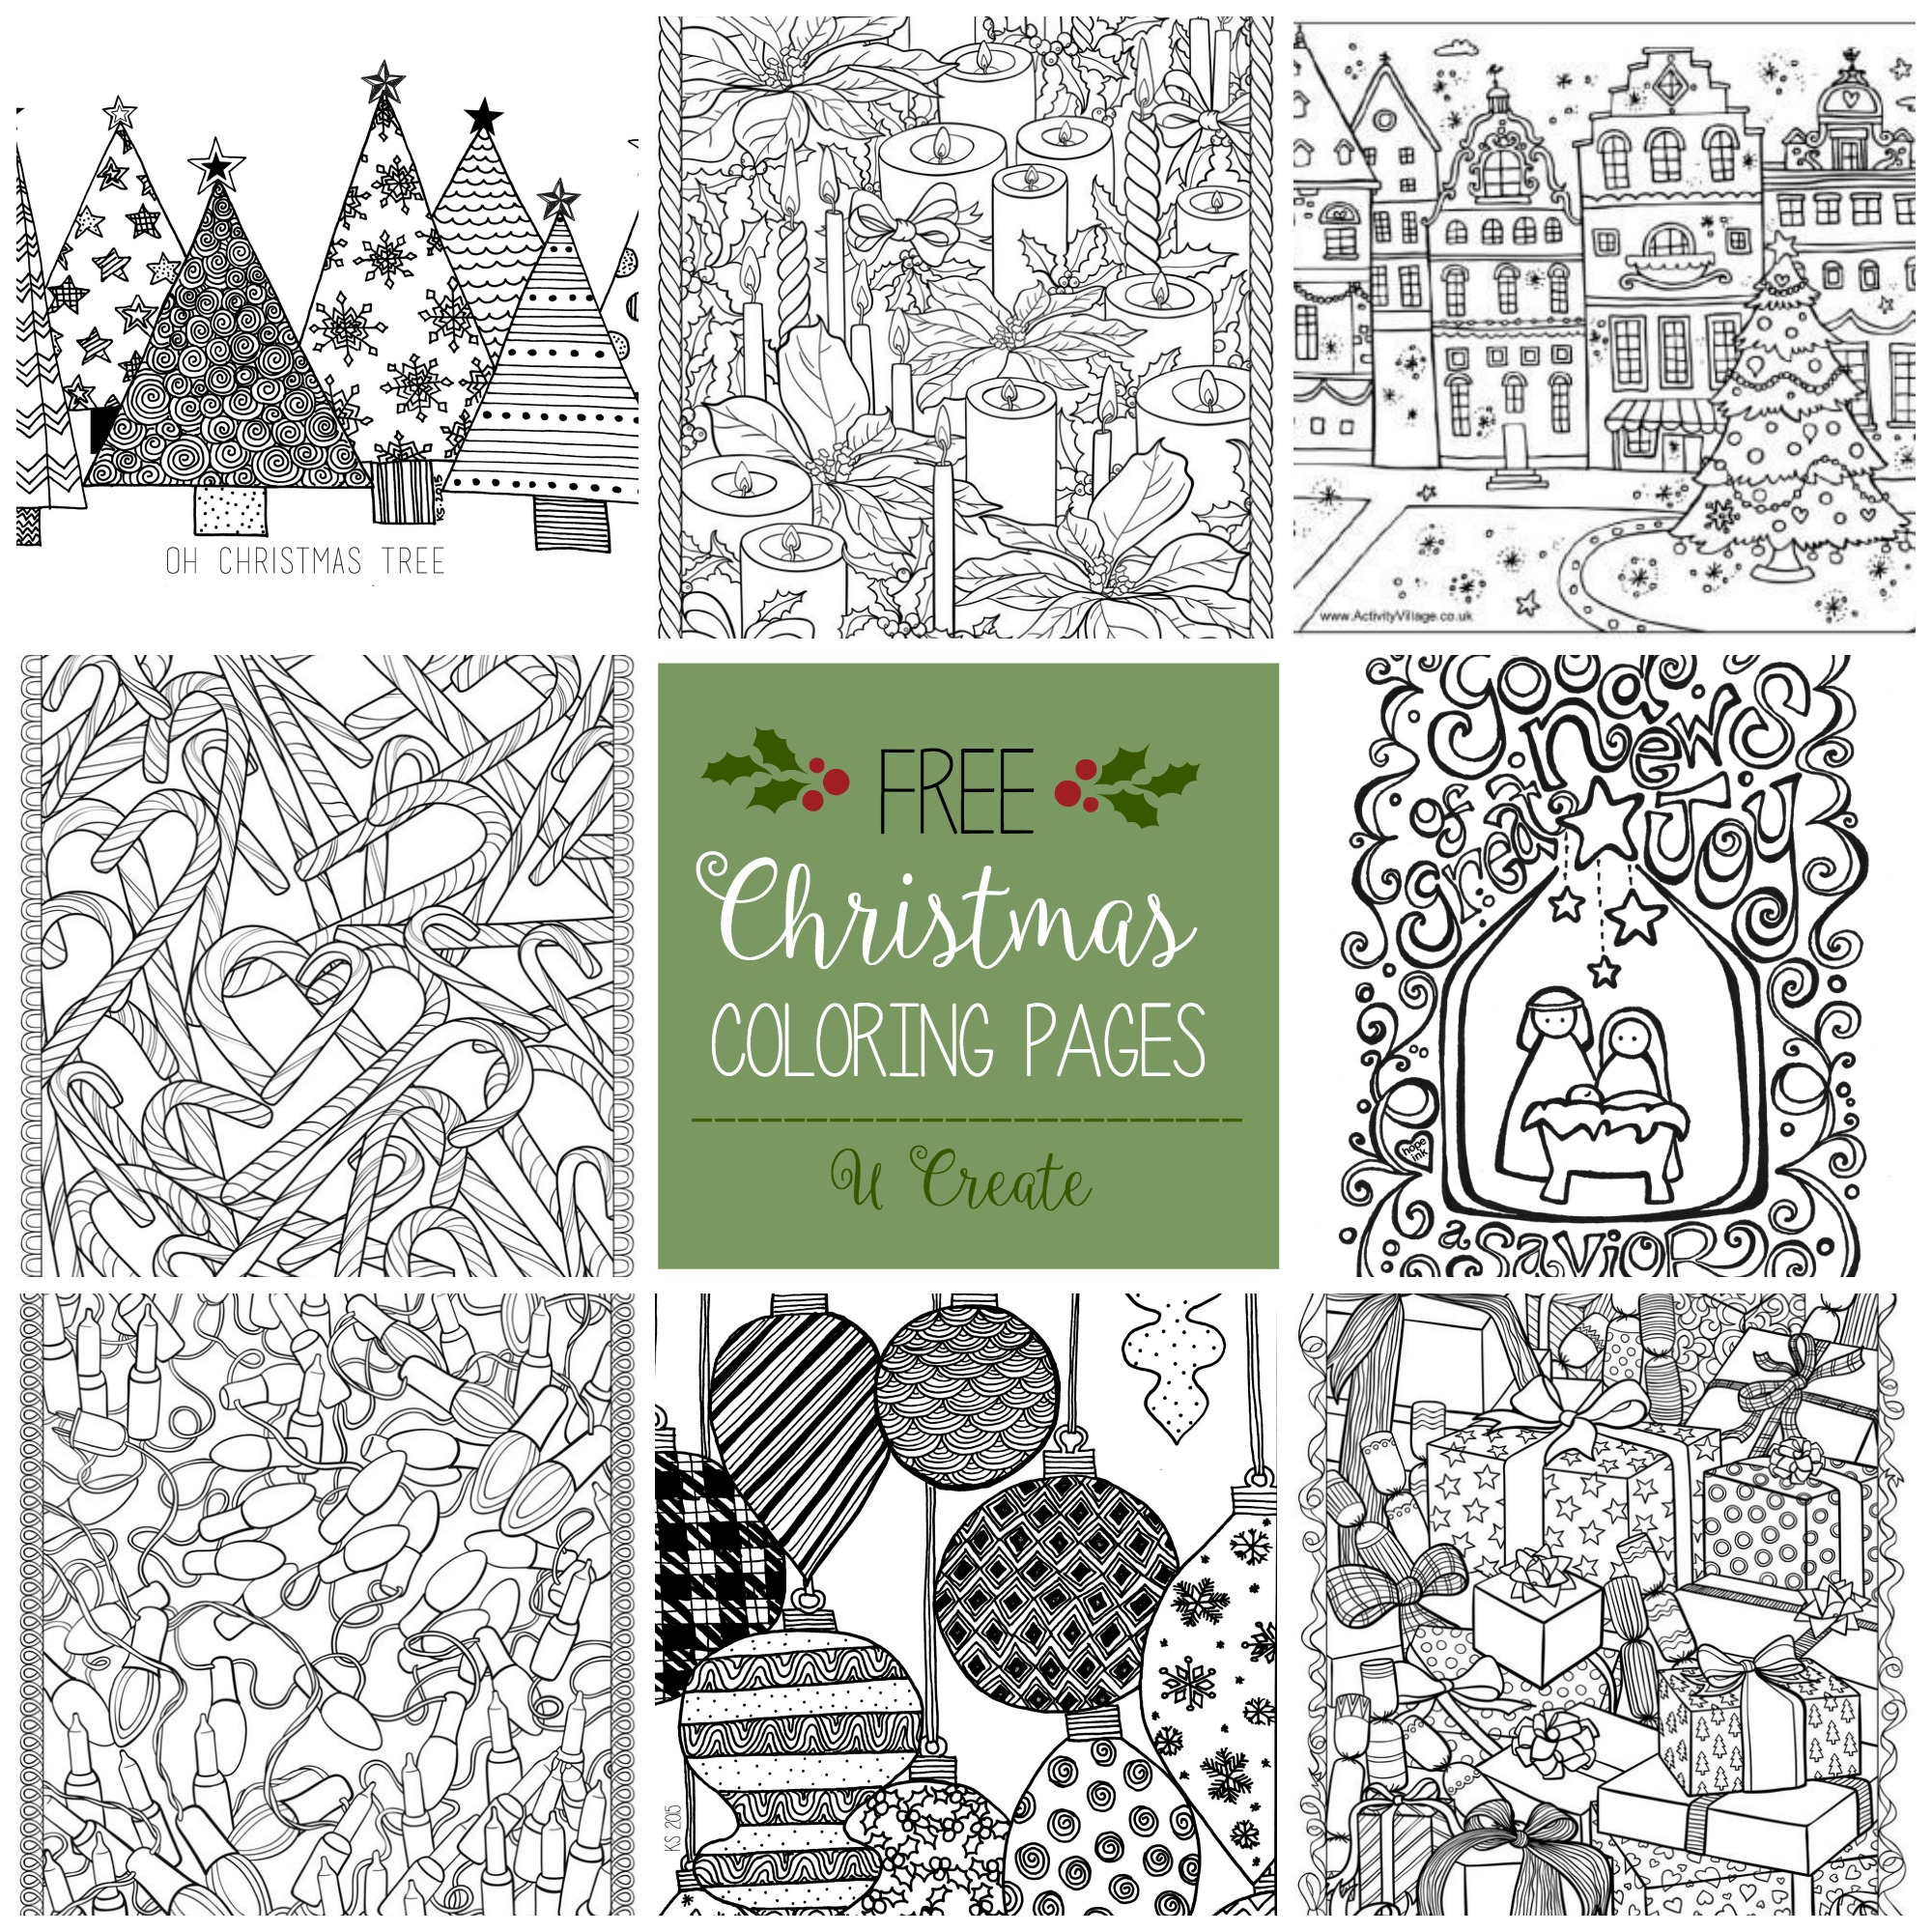 Easy Christmas Coloring Pages For Adults With Free Adult U Create